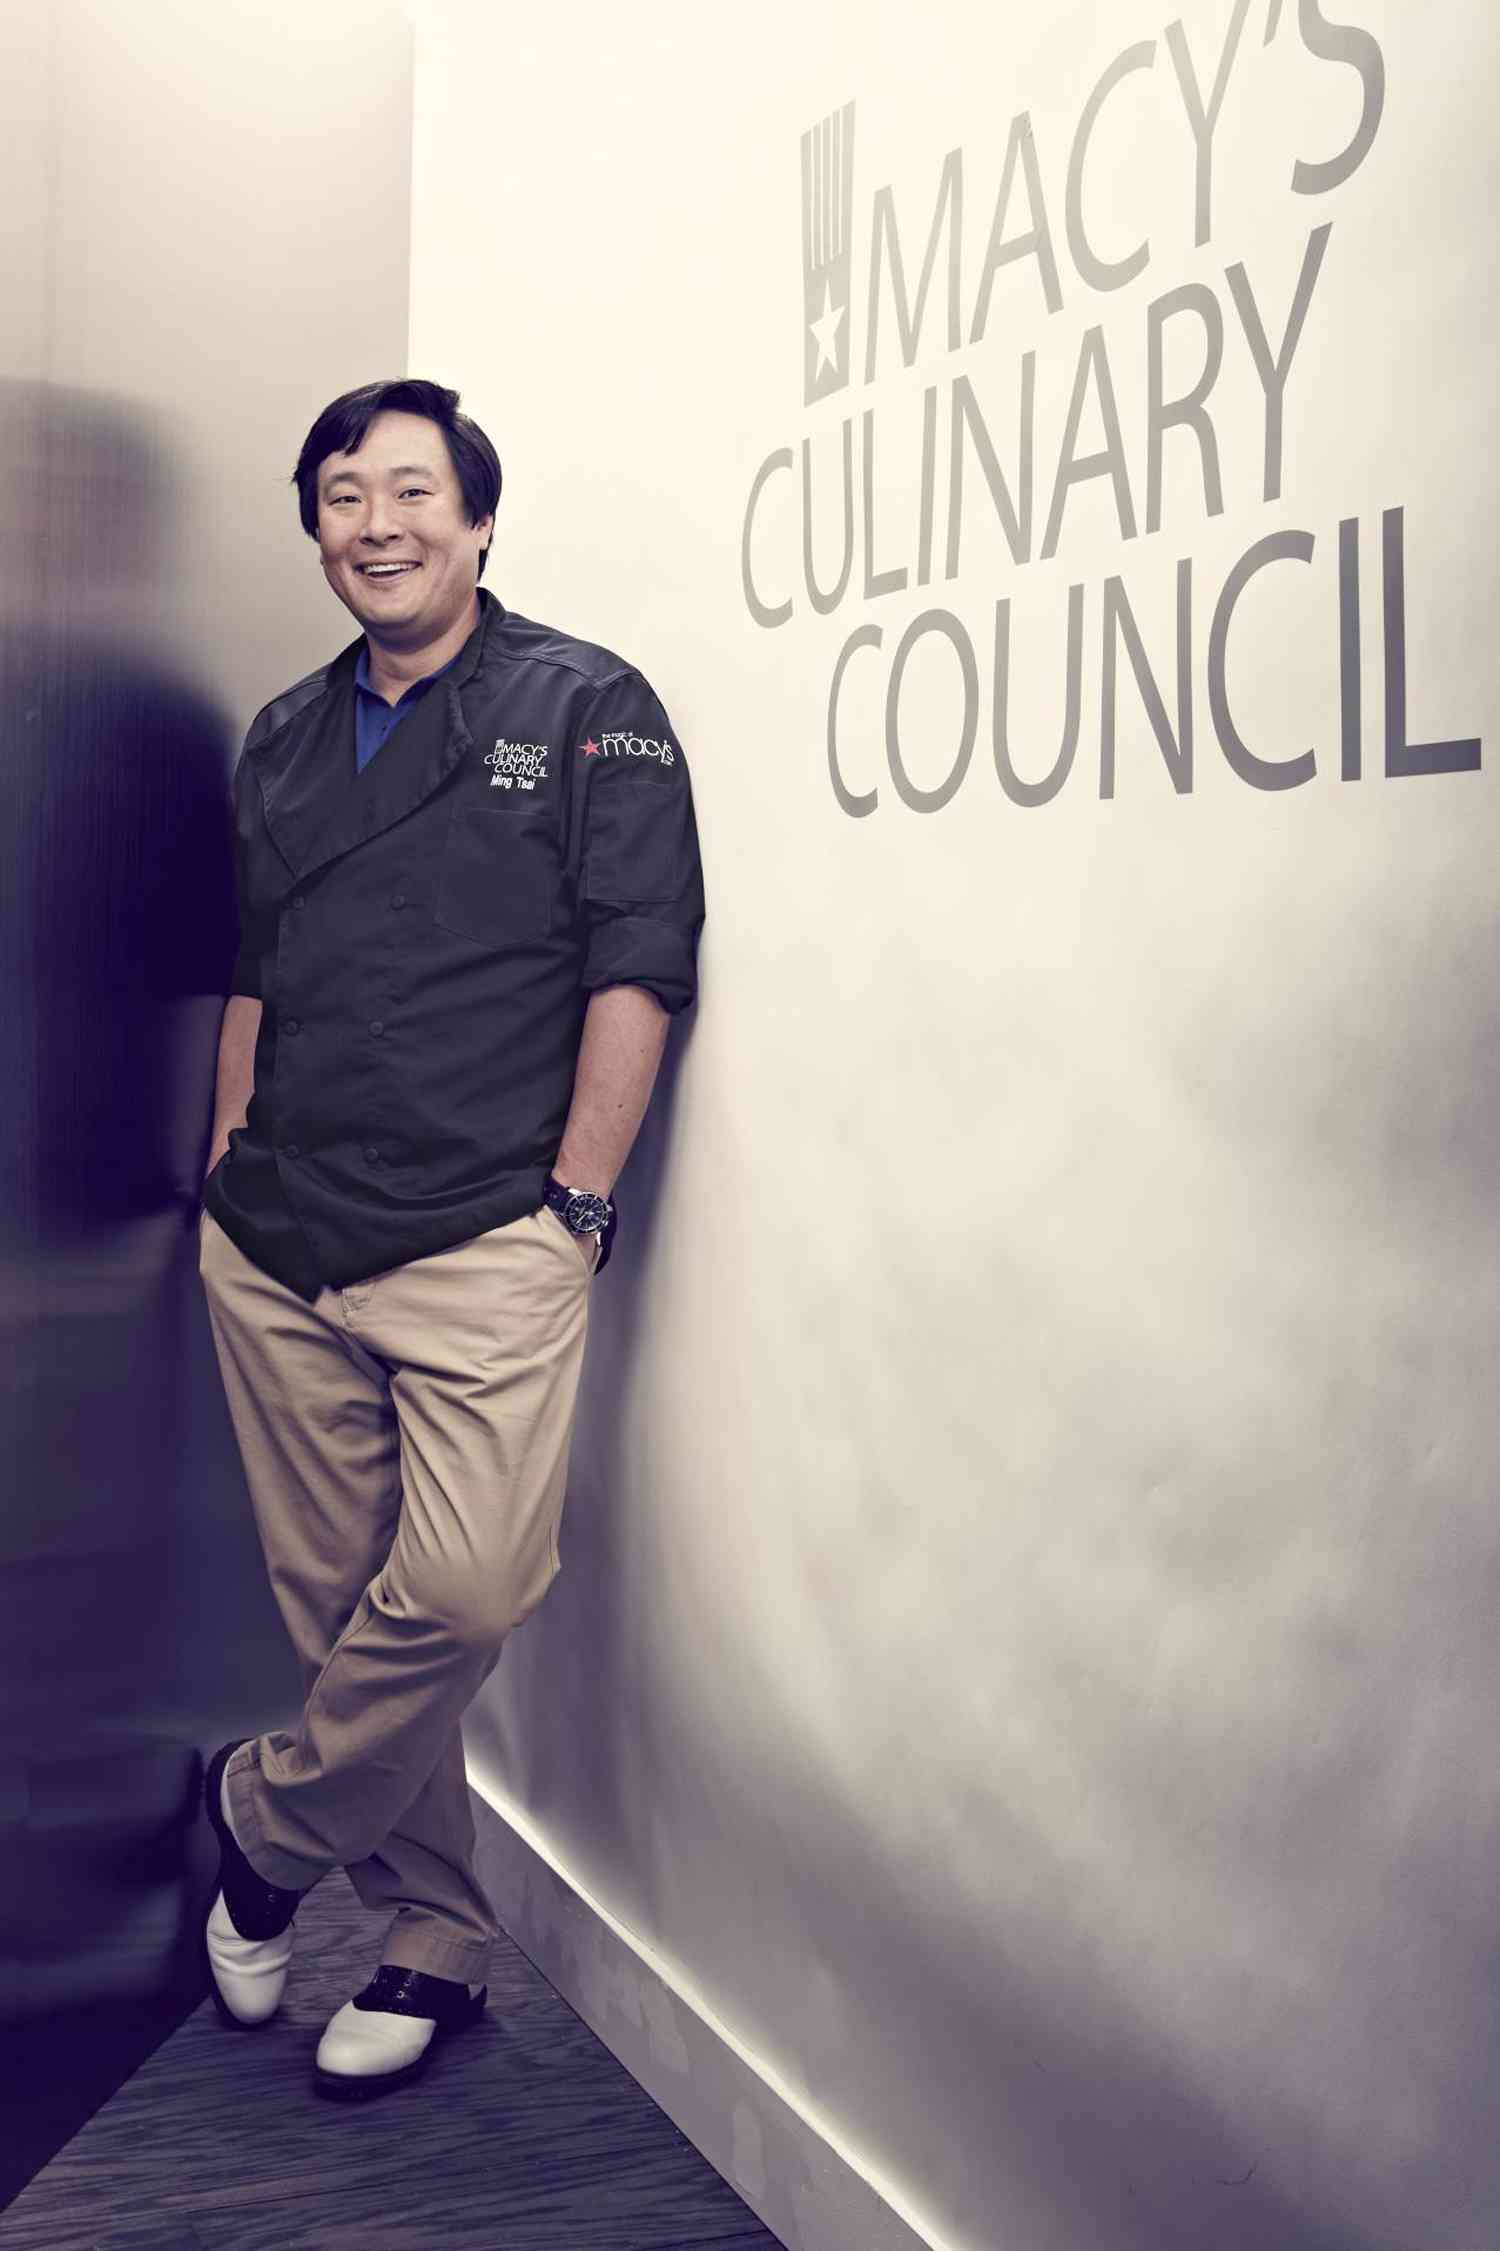 Macy's Culinary Council - Chef Ming